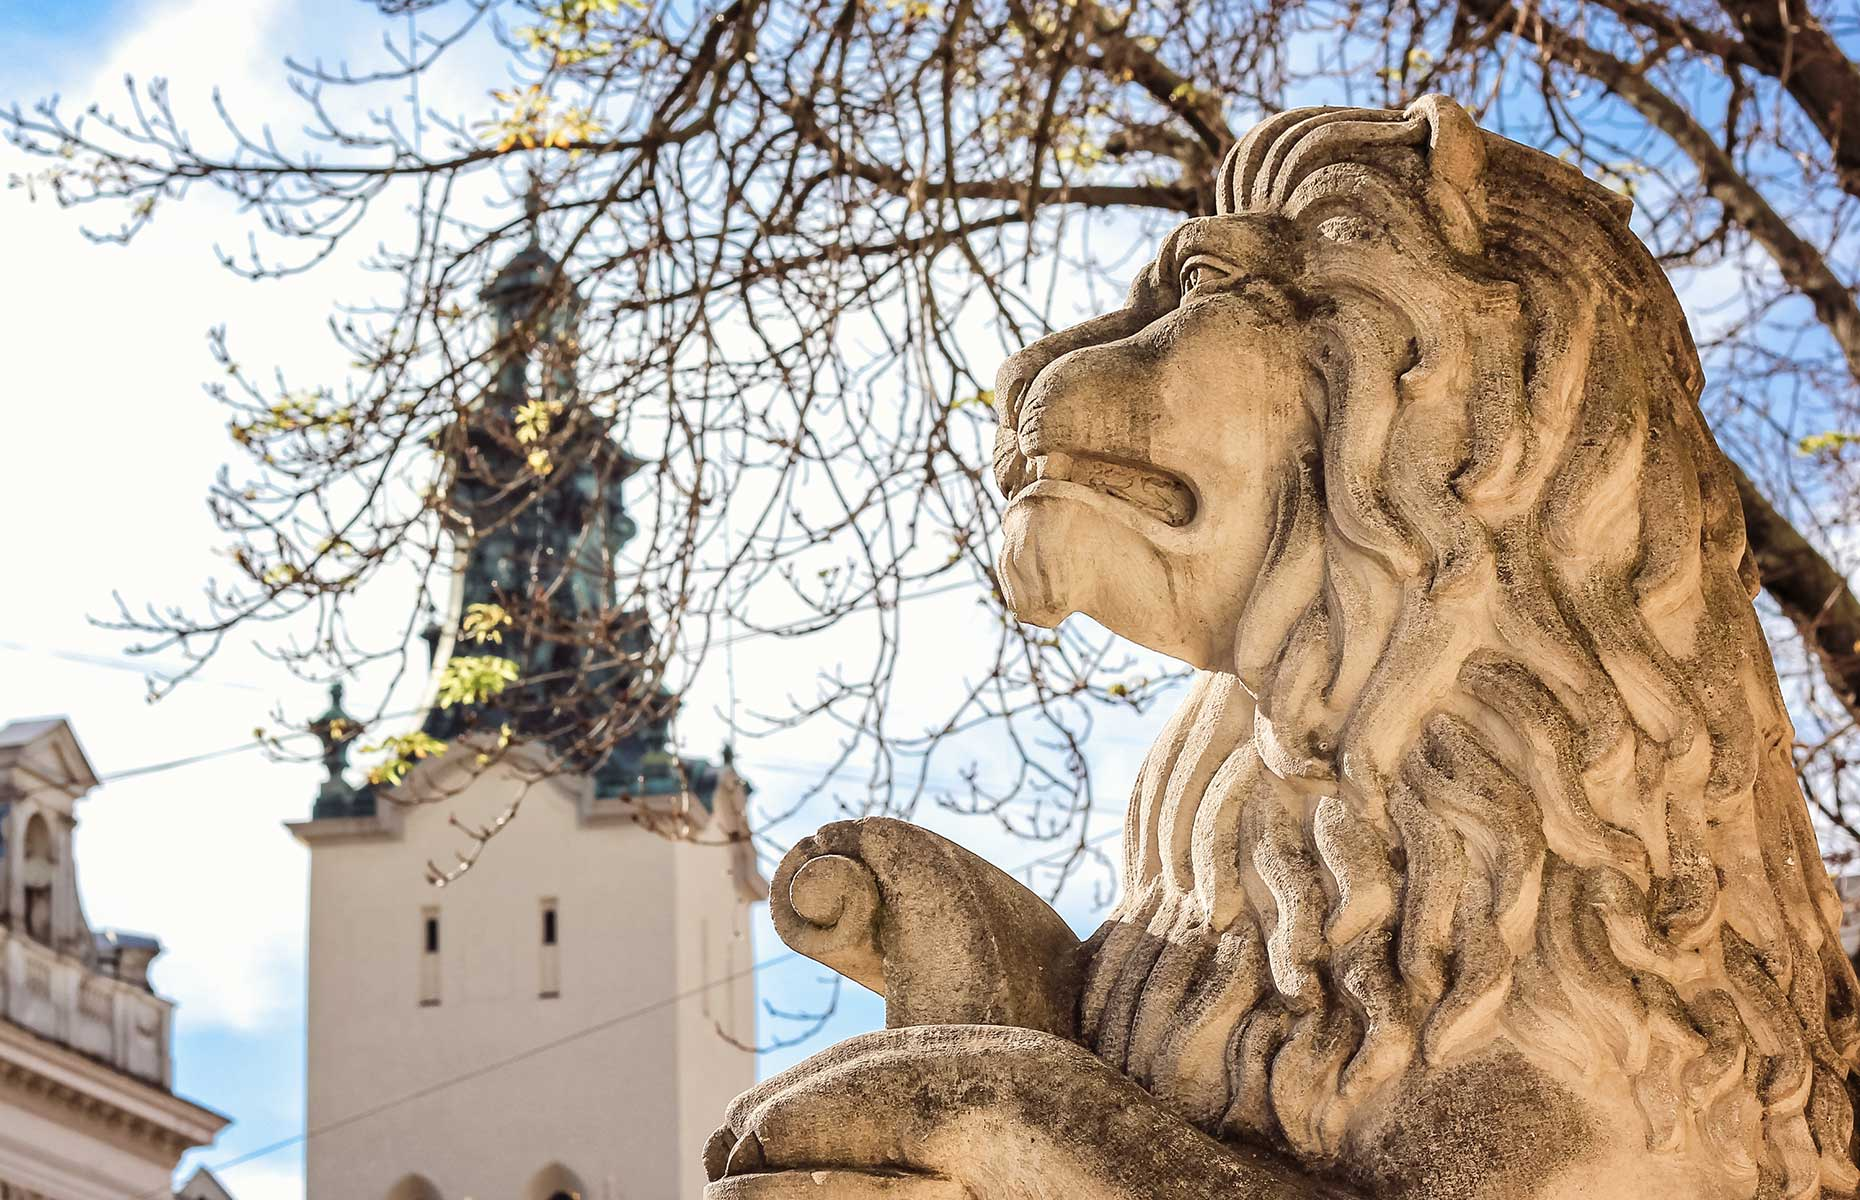 One of the many lion statues outside the city hall